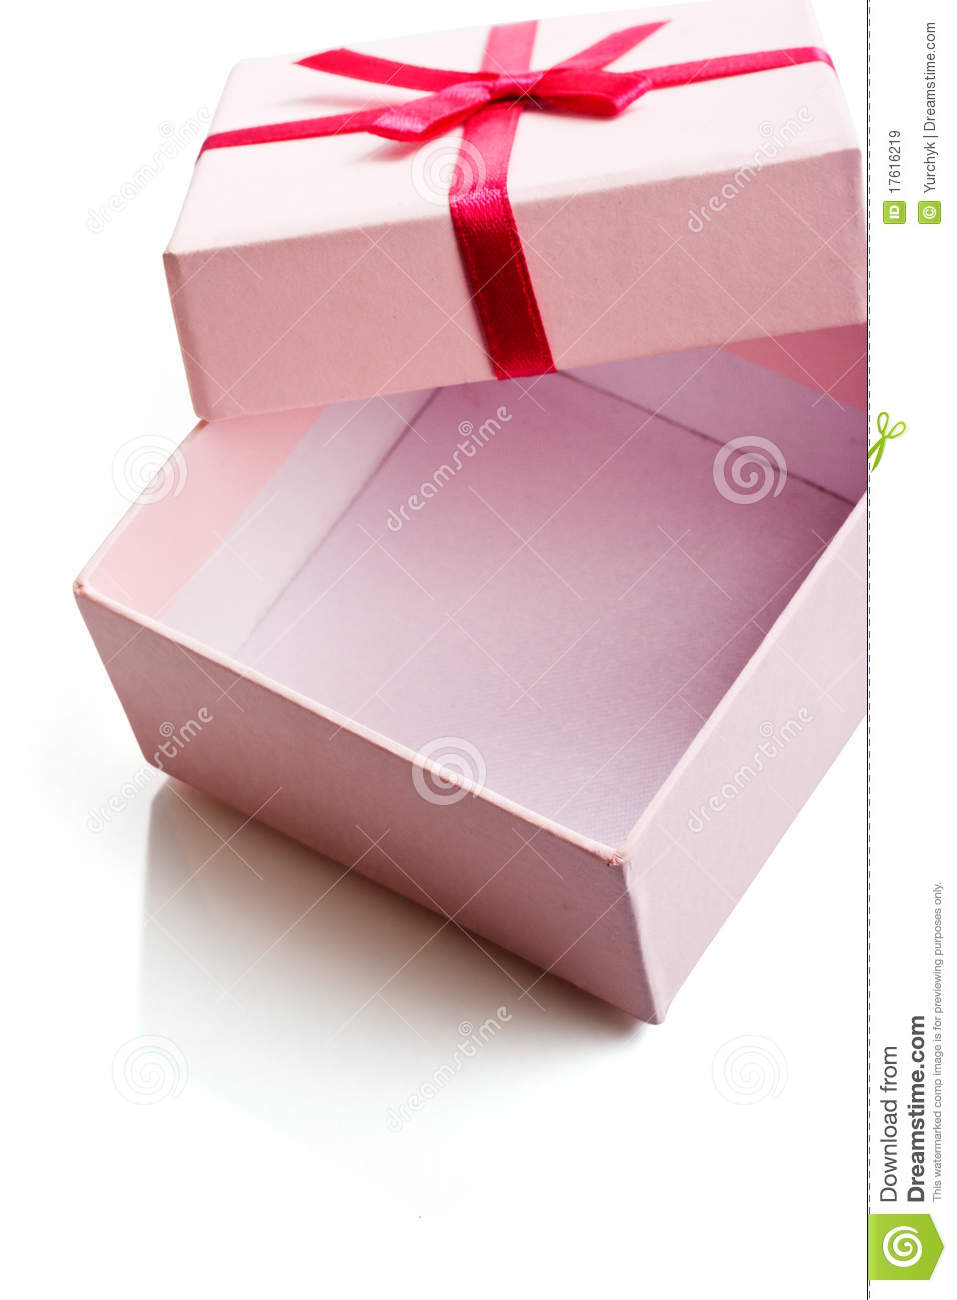 open pink gift box stock image image of greeting love 17616219. Black Bedroom Furniture Sets. Home Design Ideas